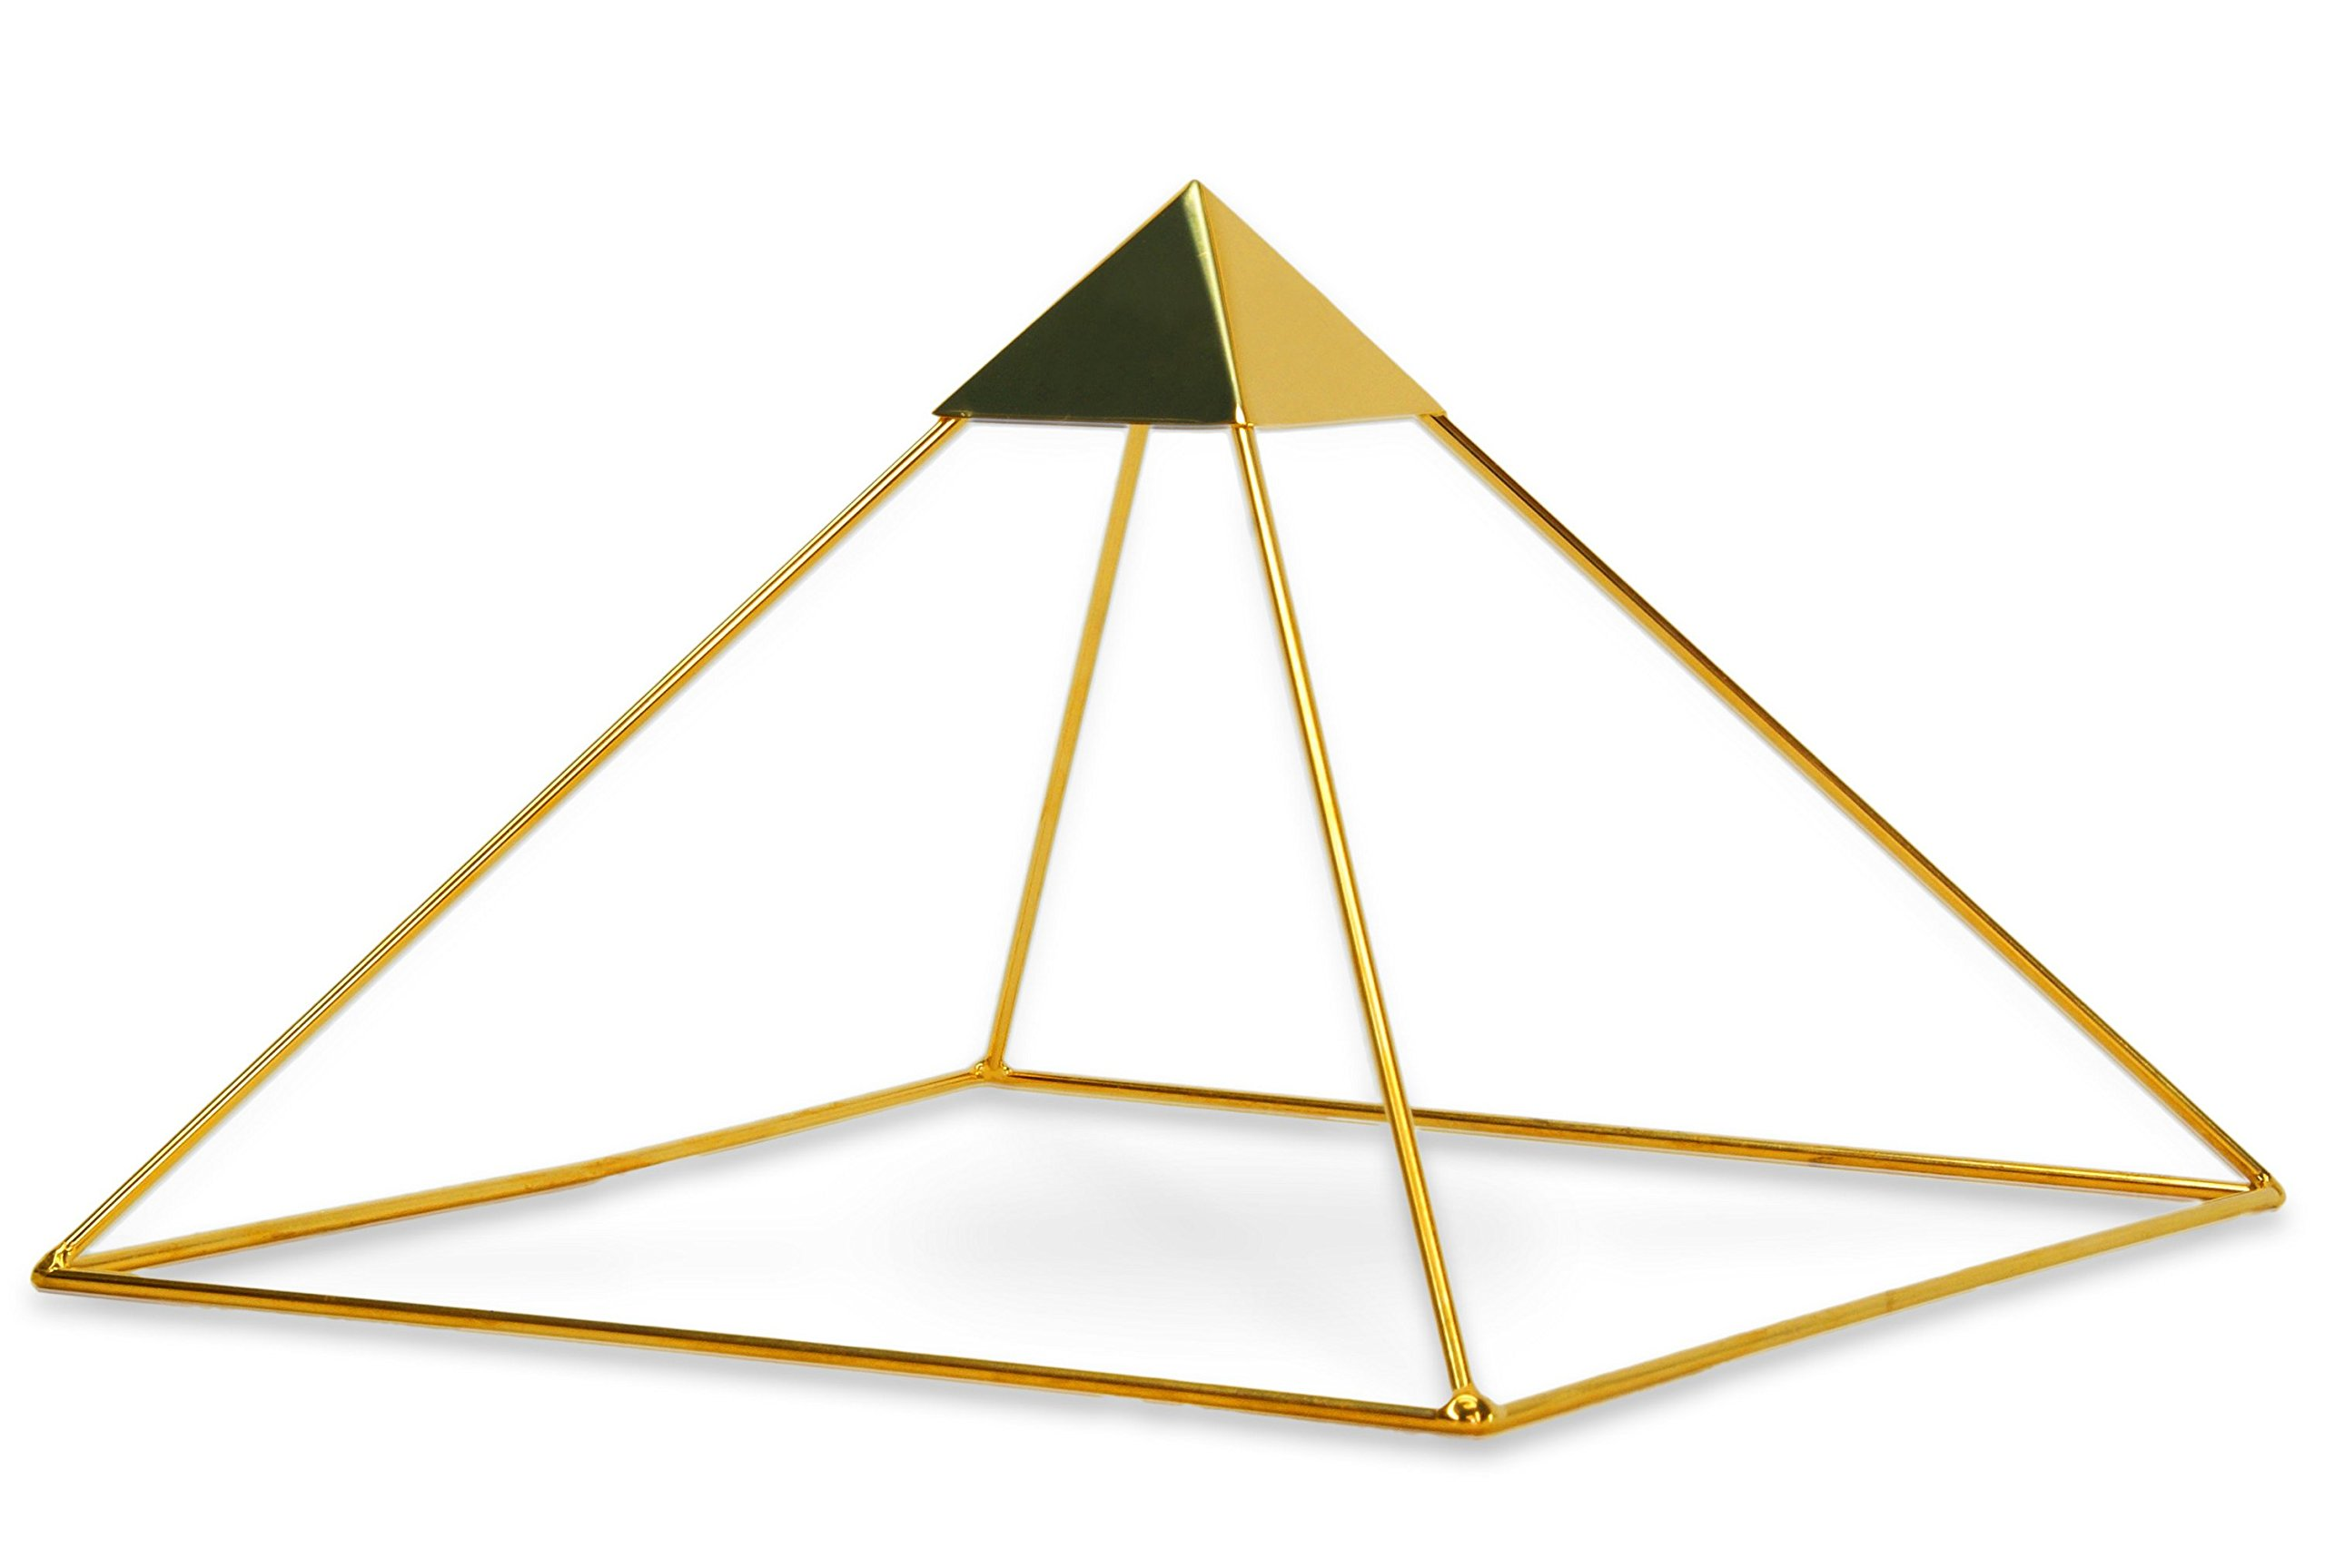 Finest Quality 51 Degree 9'' 24k Gold-plated Copper Meditation Pyramid for Healing - With Capstone